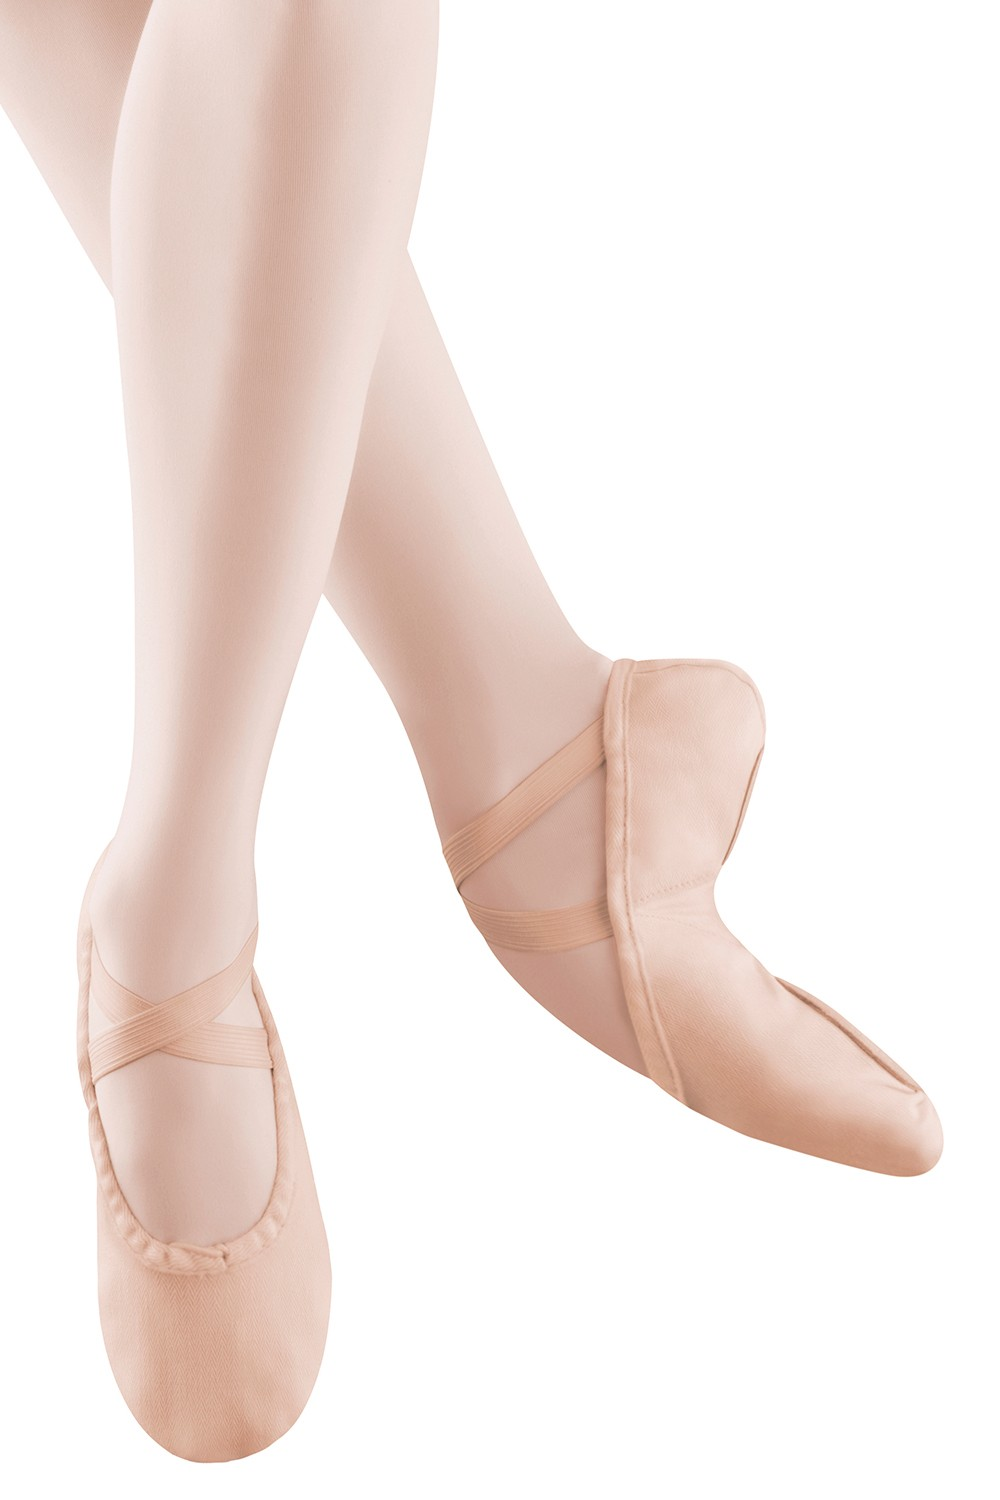 Mirella Ballon Ballet Shoe Women's Ballet Shoes